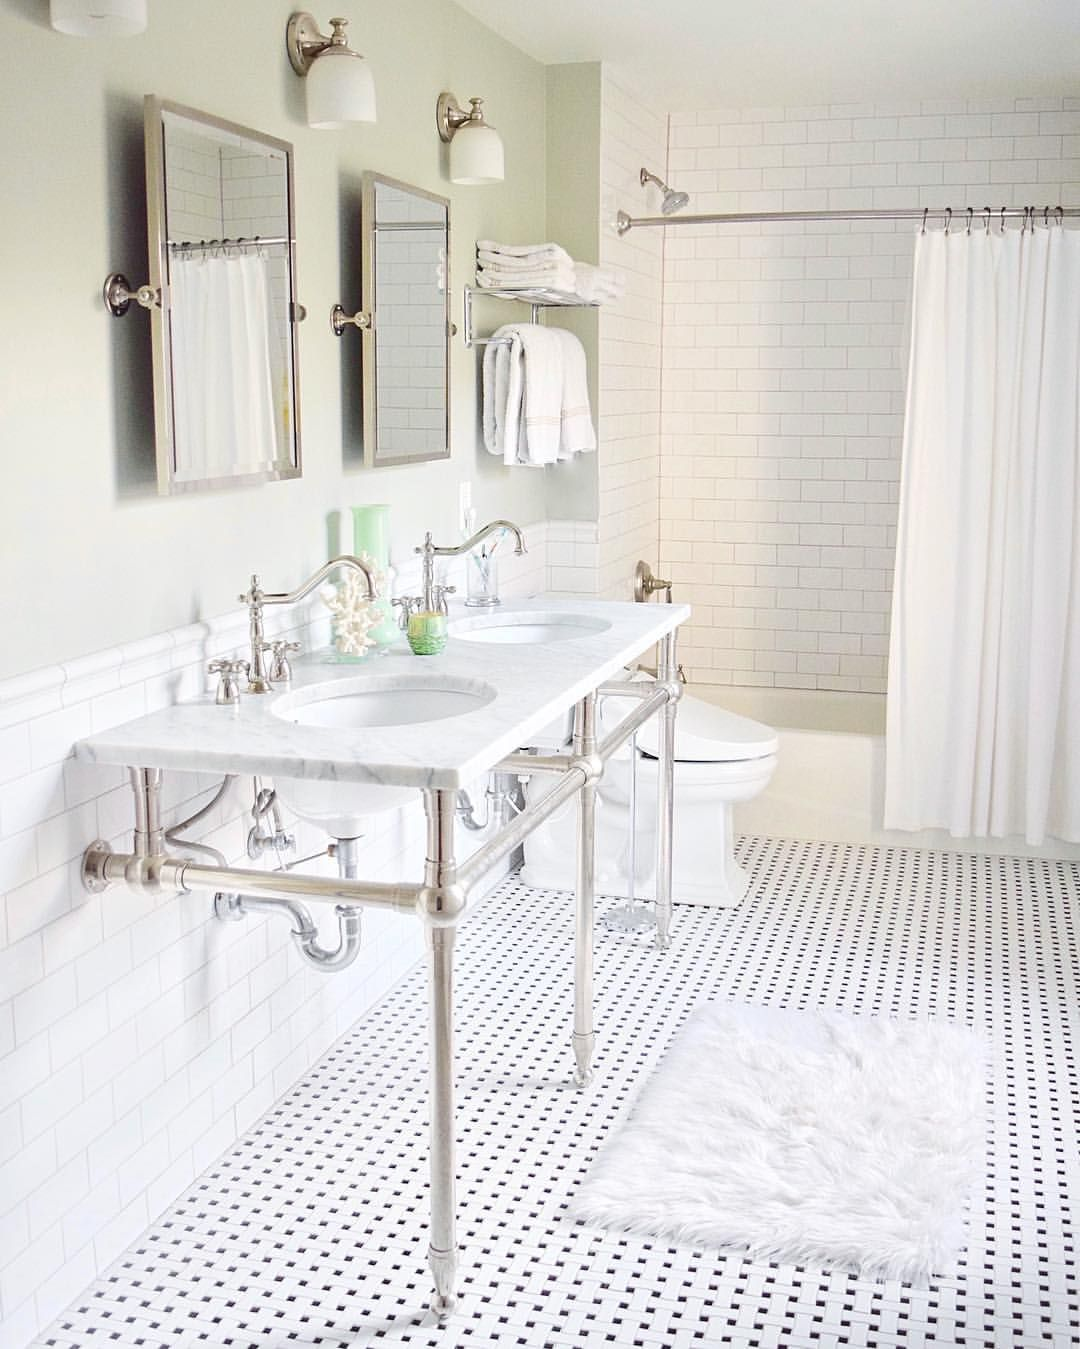 Modern farmhouse bathroom with white subway tile black and white house dailygadgetfo Images